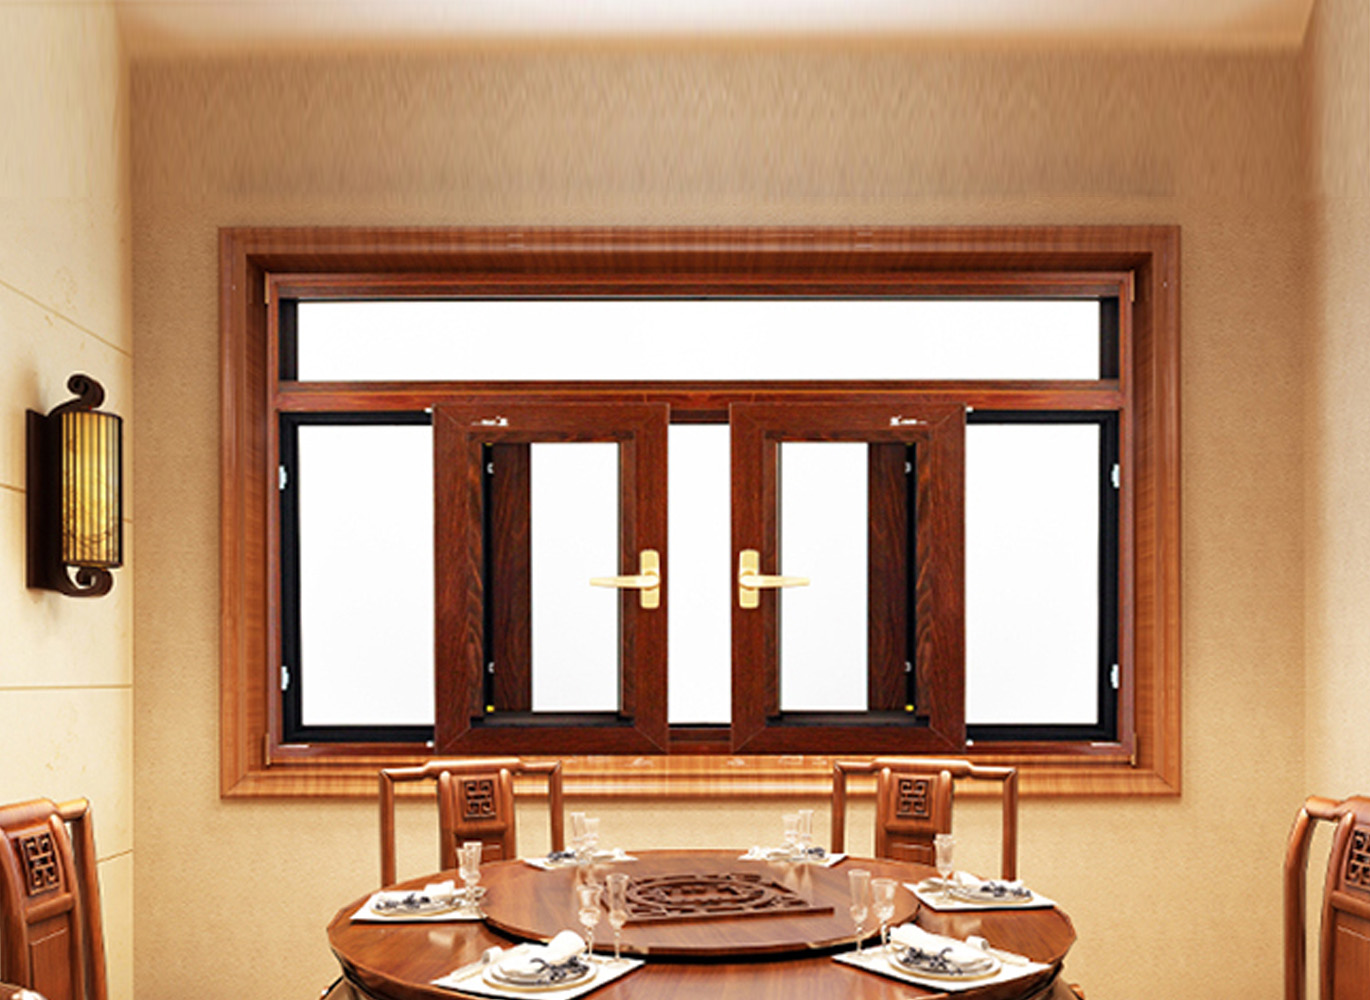 double glazing aluminium tilt and slide windows for house with best thermal and acoustic performance